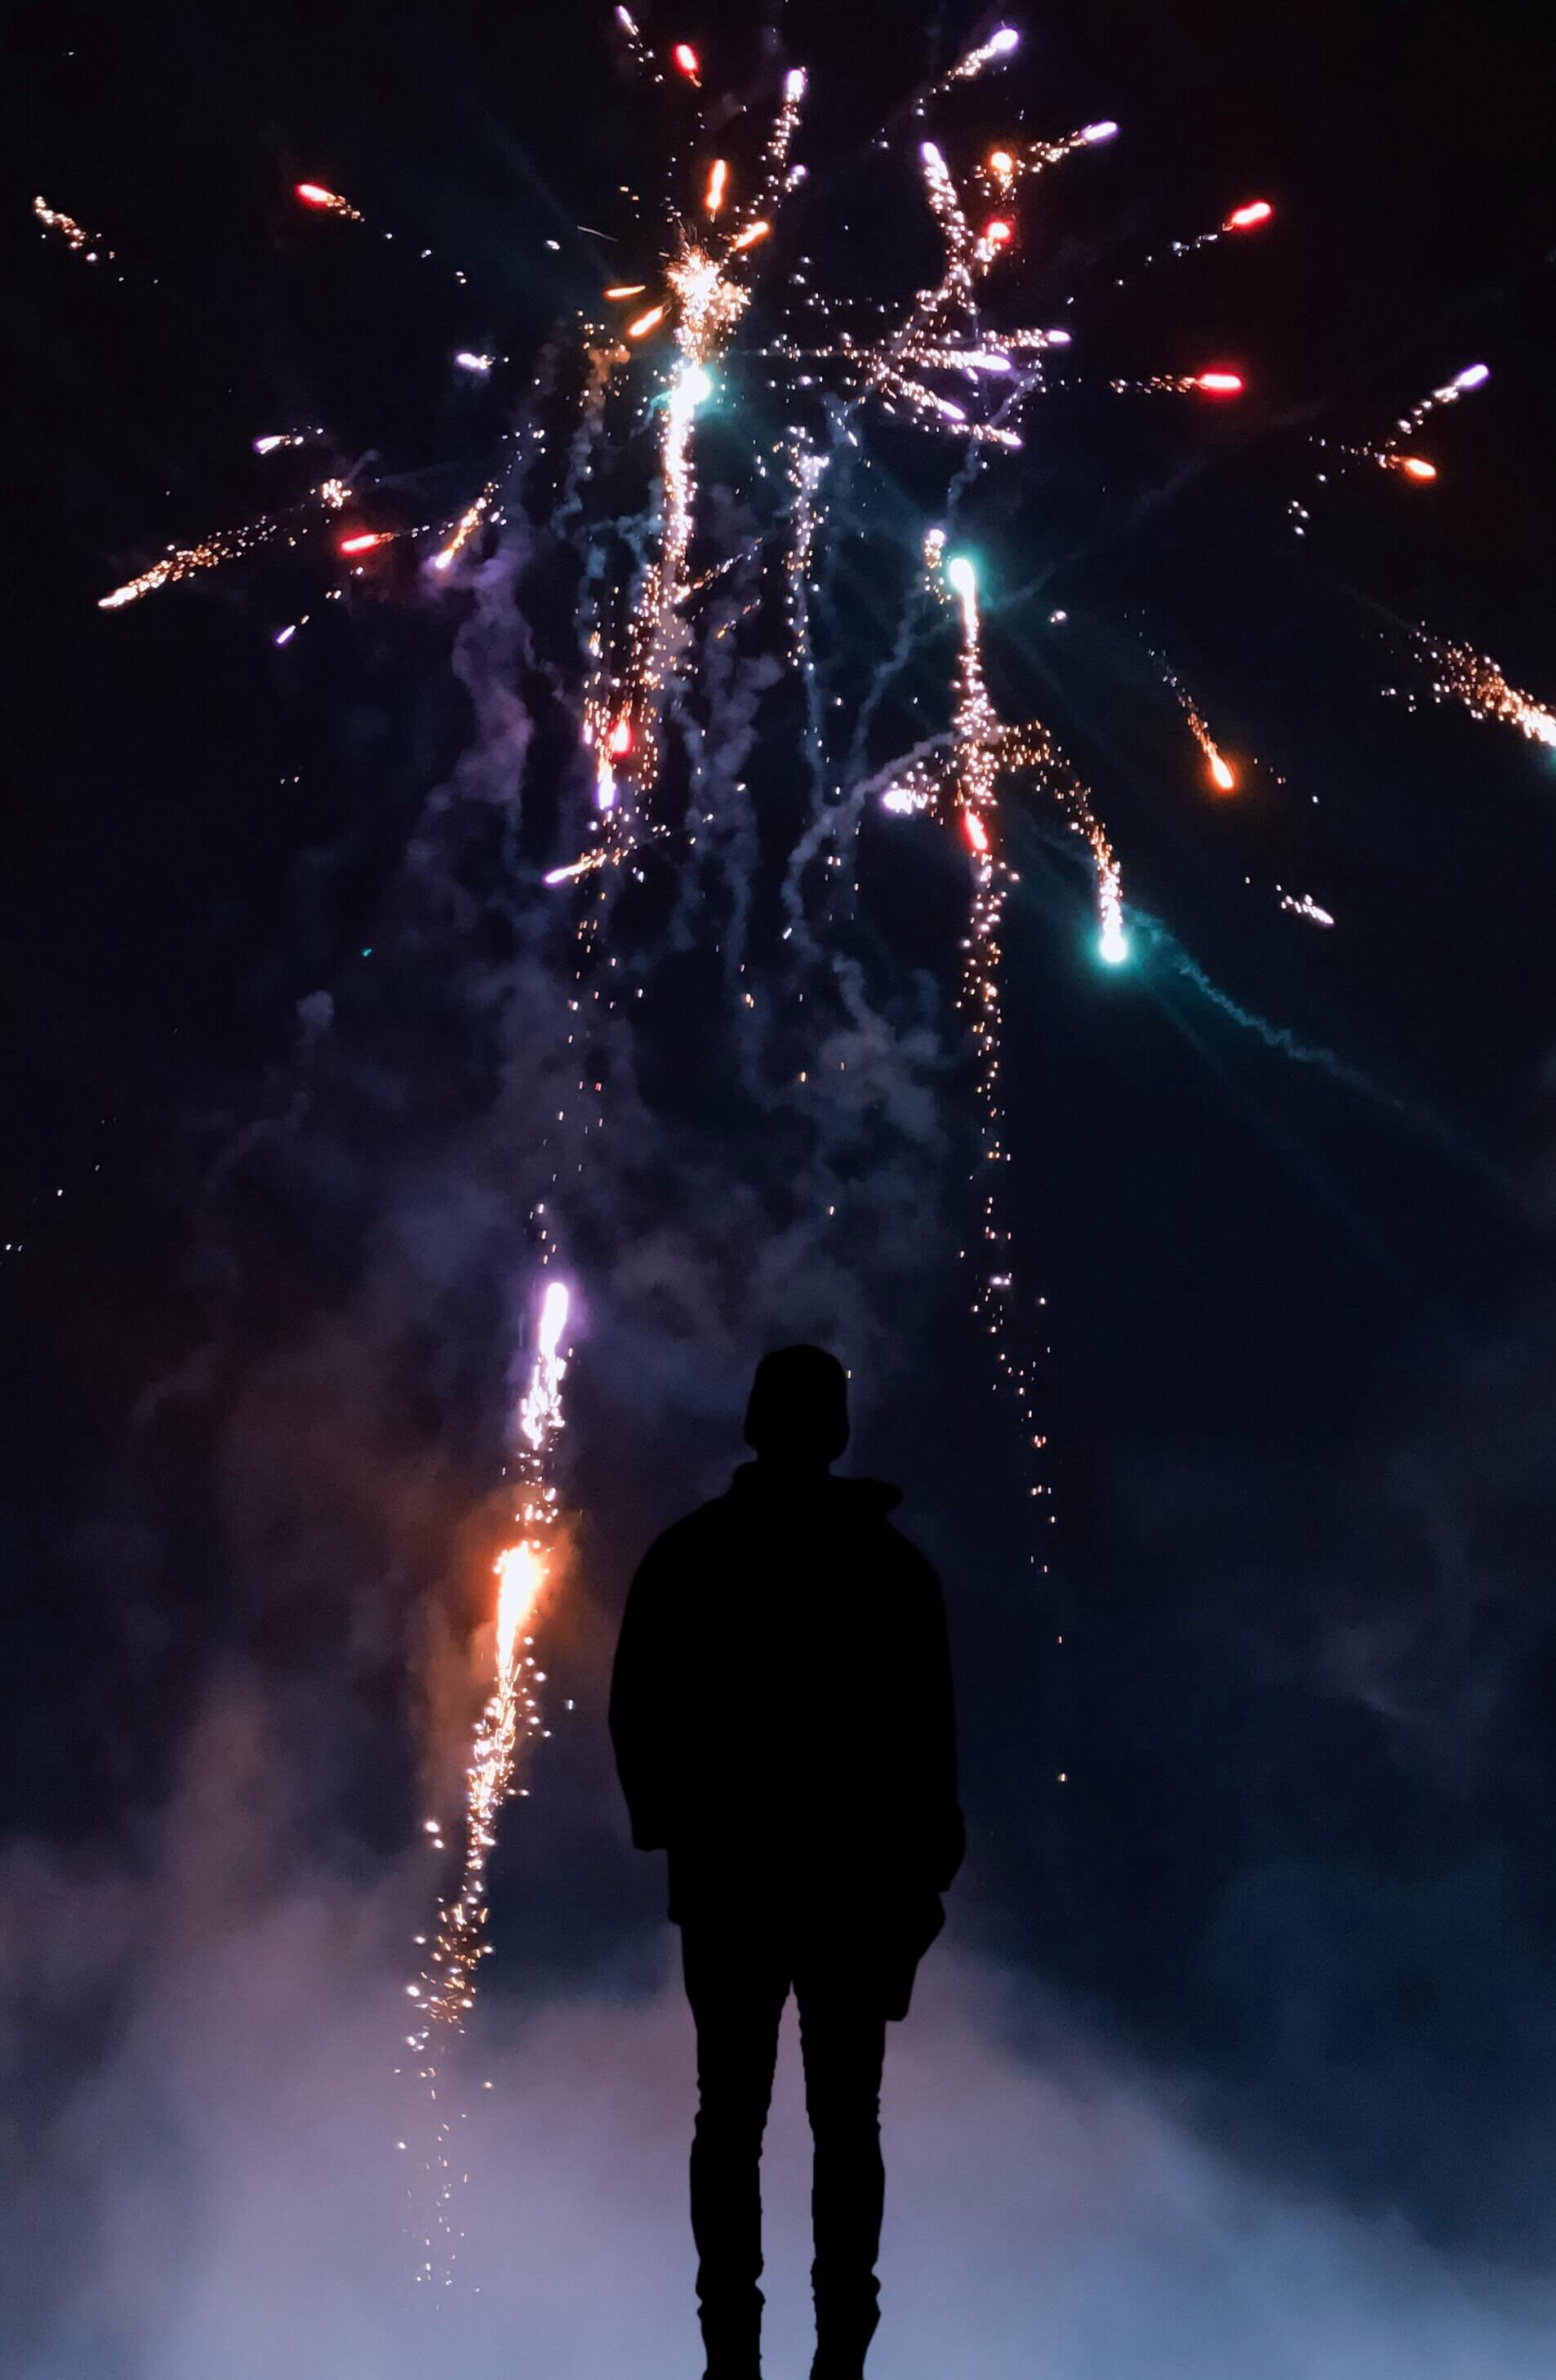 a person in silhouette watching an assortment of fireworks exploding in the dark night sky